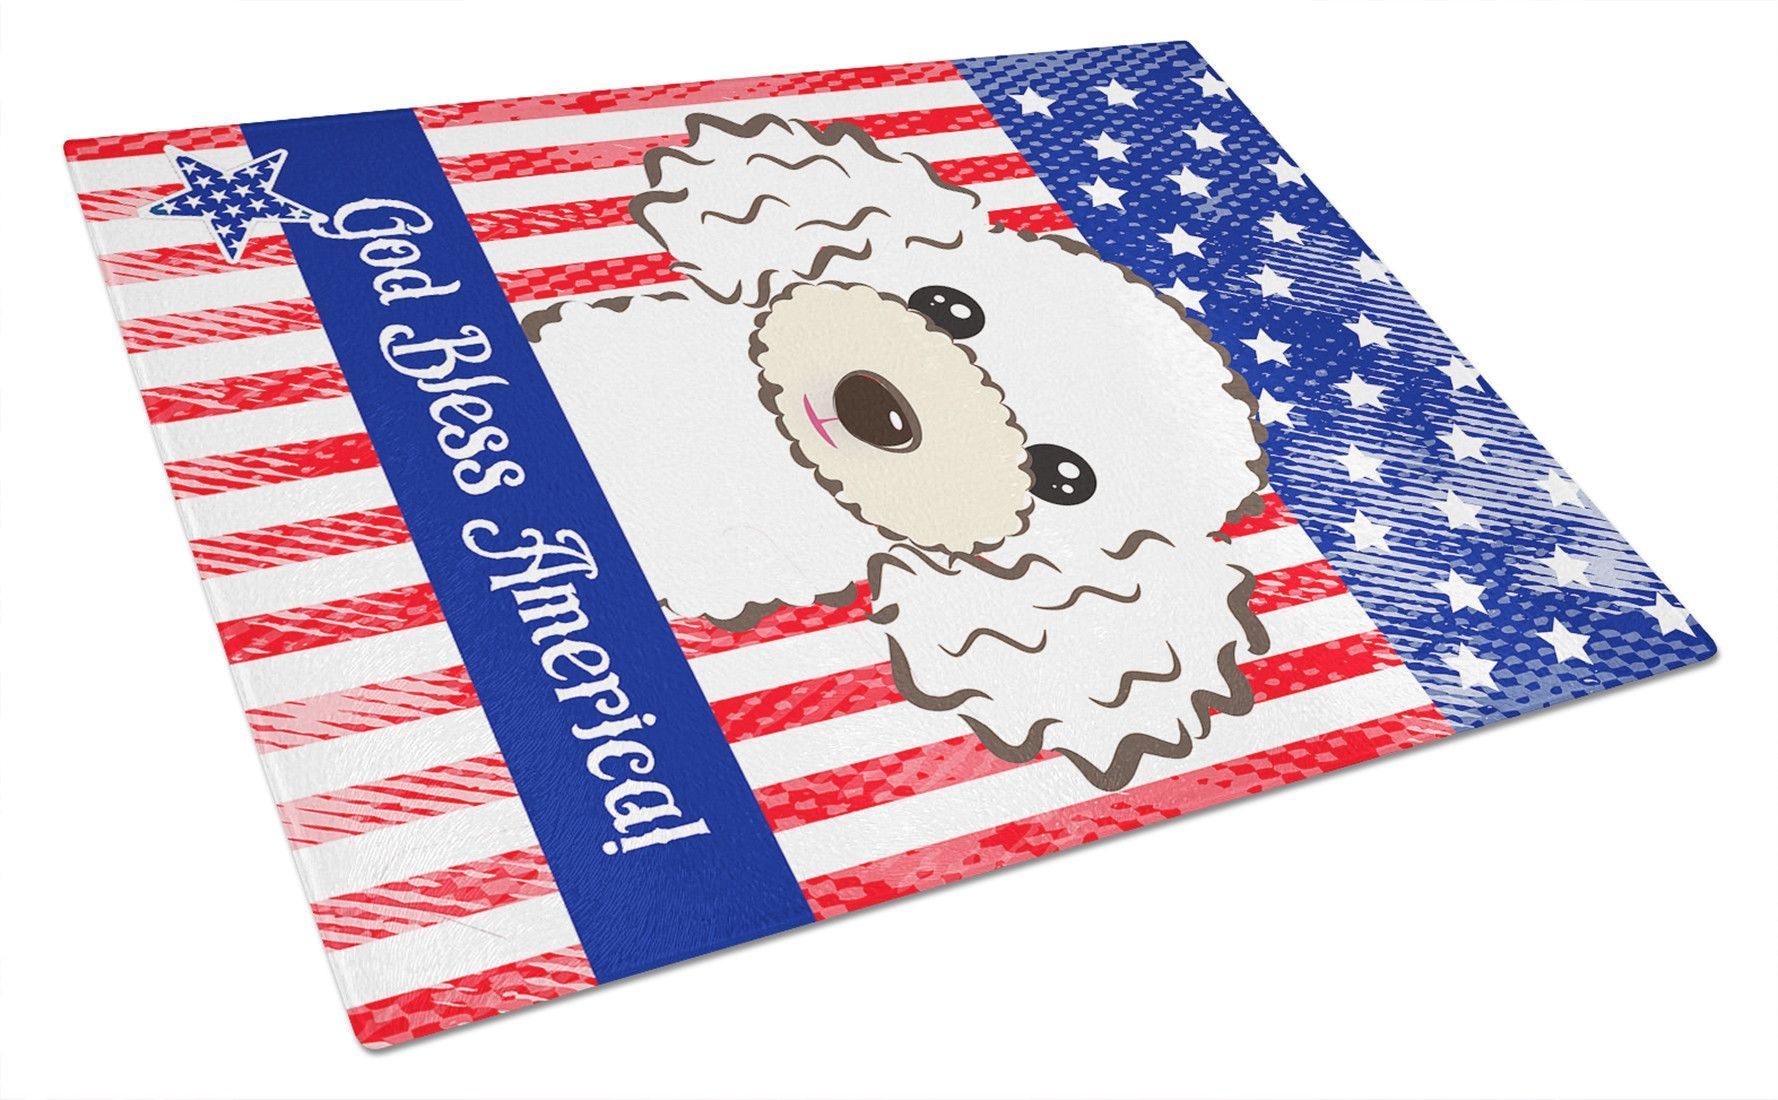 God Bless American Flag with White Poodle Glass Cutting Board Large BB2187LCB